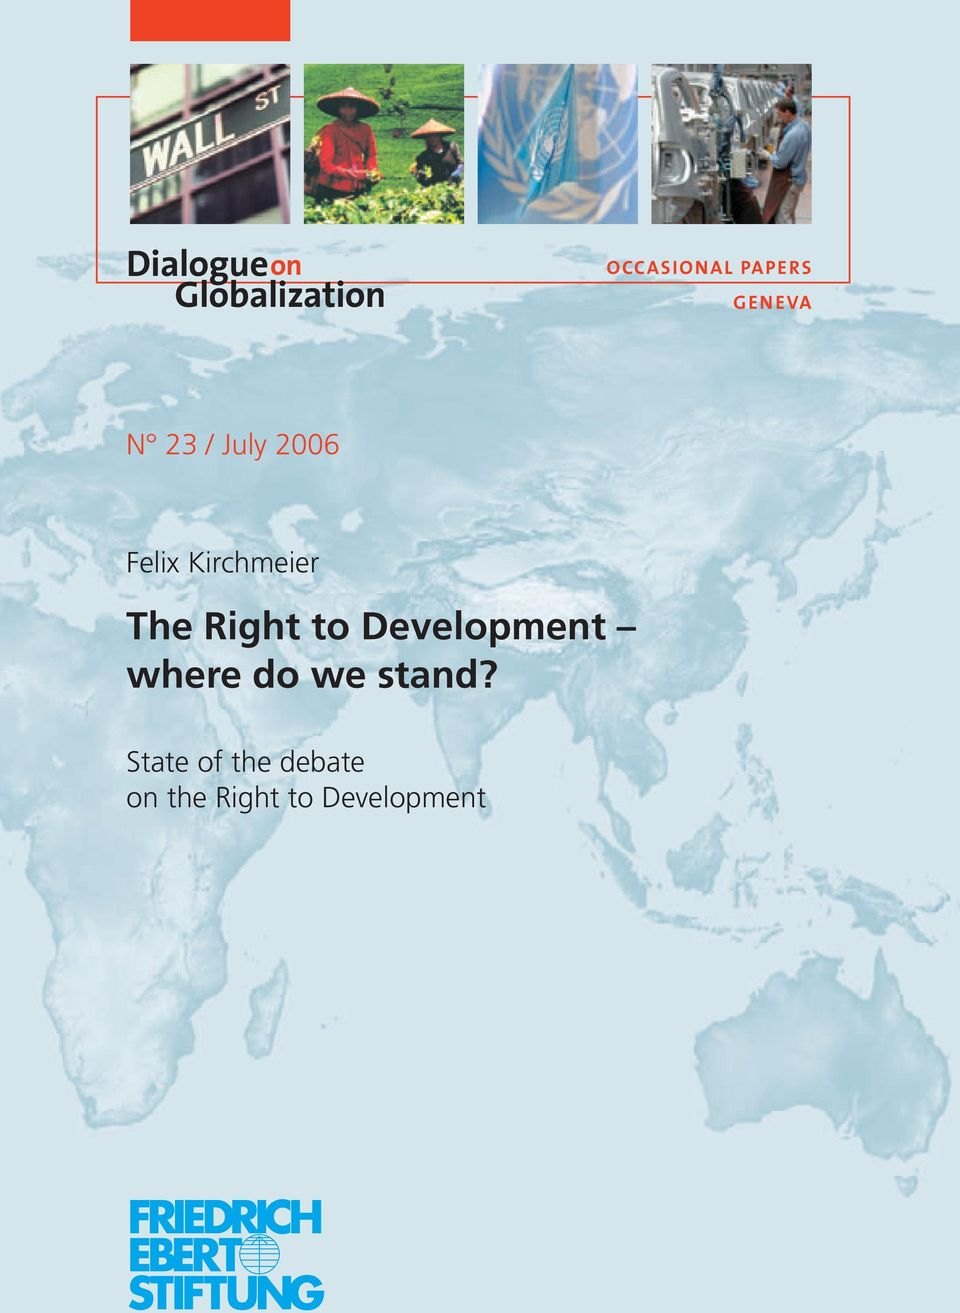 The Right to Development where do we stand?